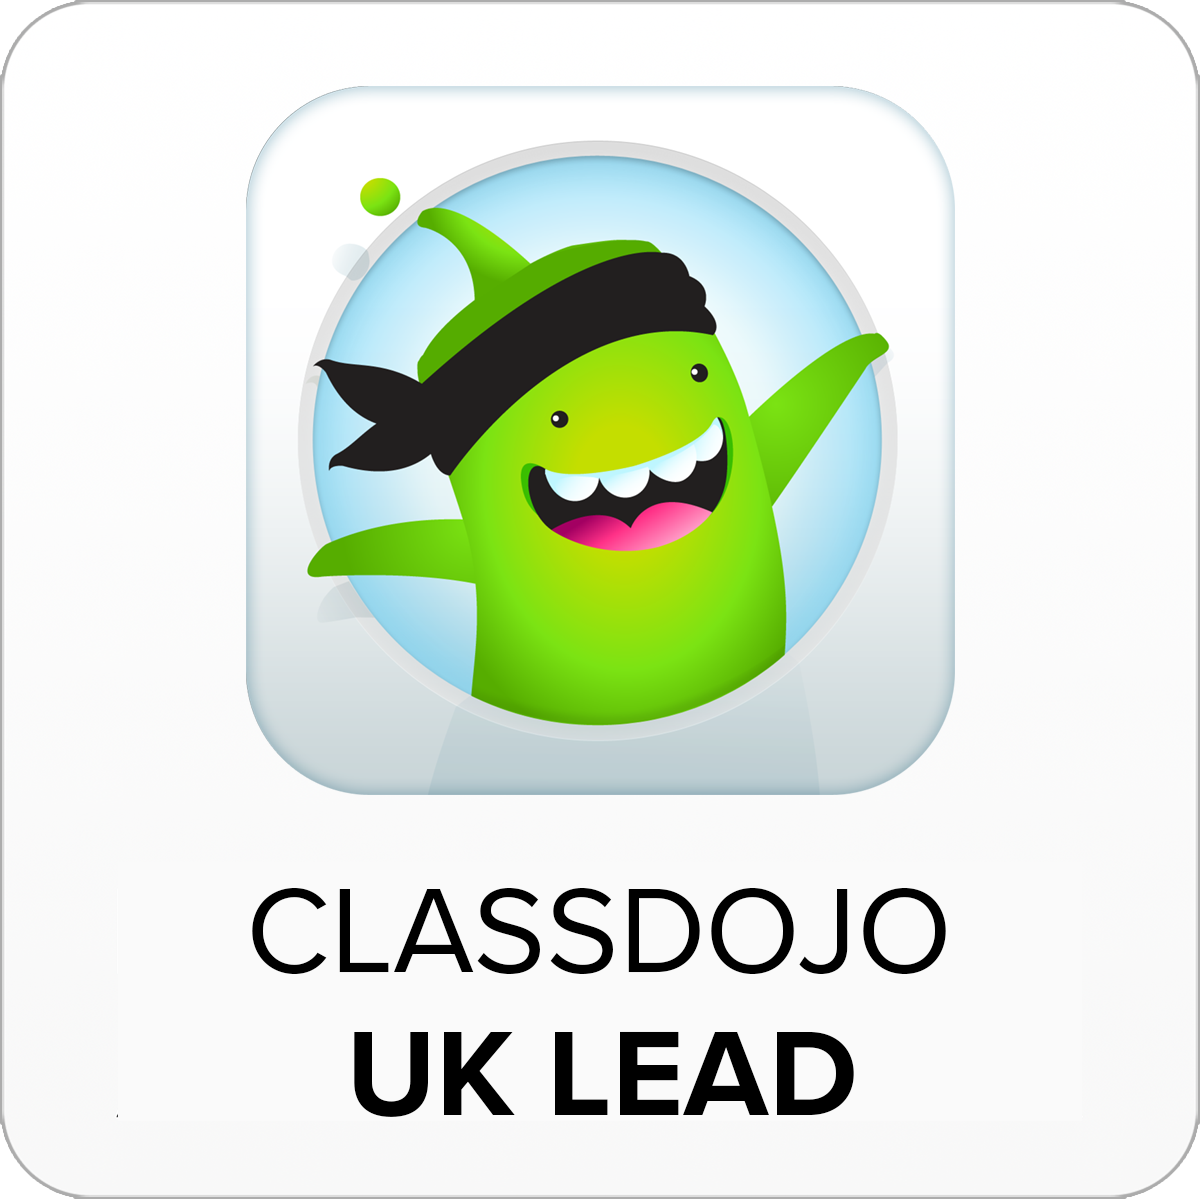 ClassDojo UK Lead badge